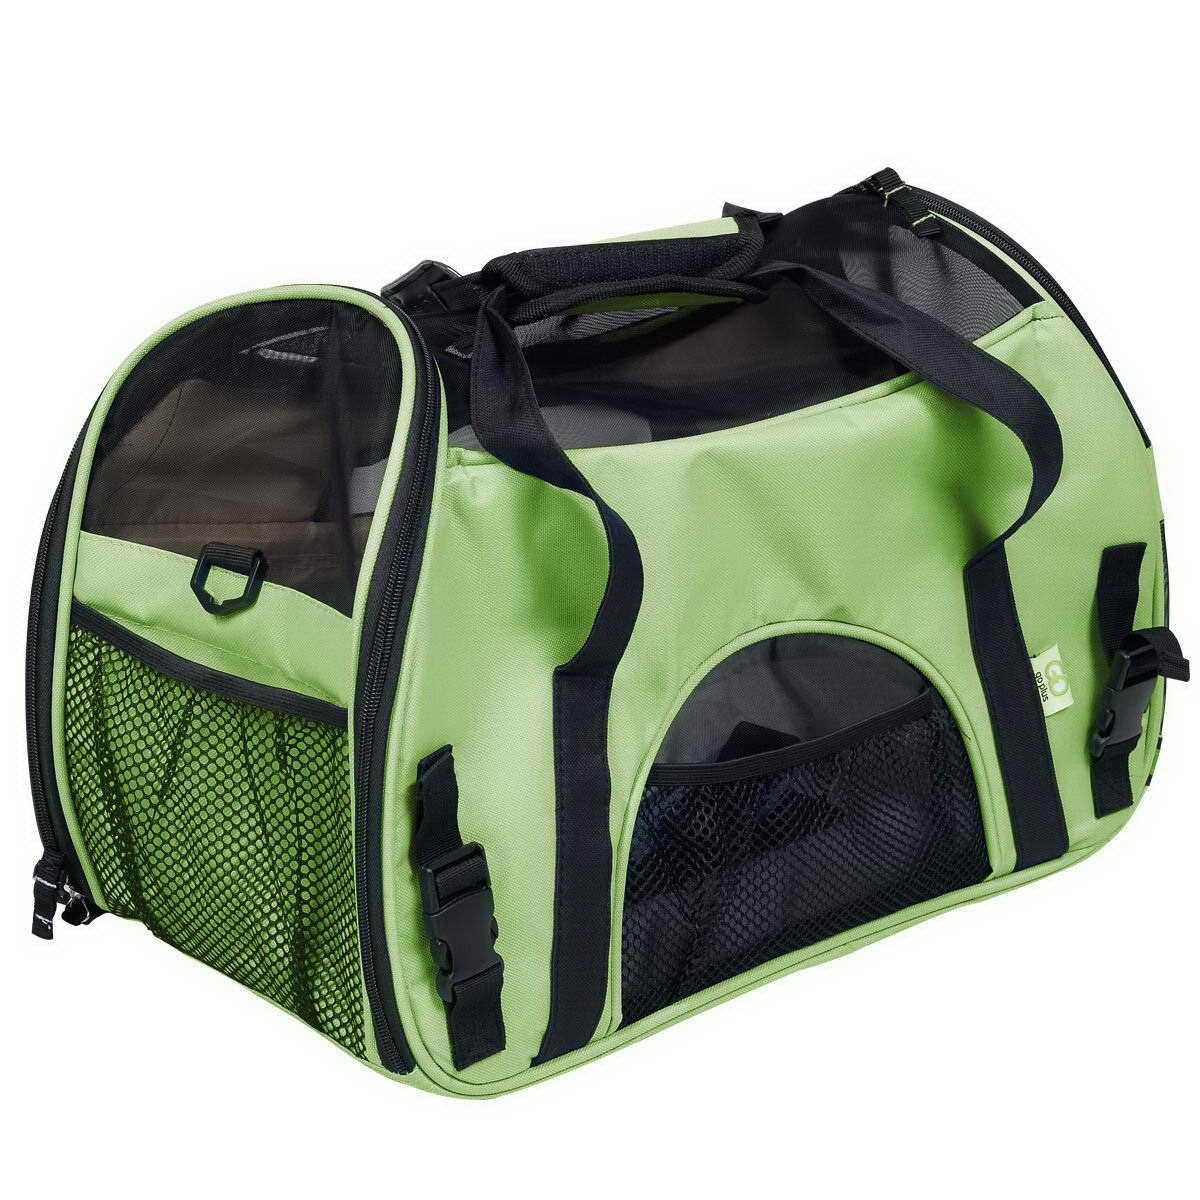 Green LargePet Carrier Soft Sided Pets Cat Carriers, Collapsible Portable Travel Dog Airplane Carrier for Small and Medium Cats Dogs Puppies (Up to 15lbs),bluee,M